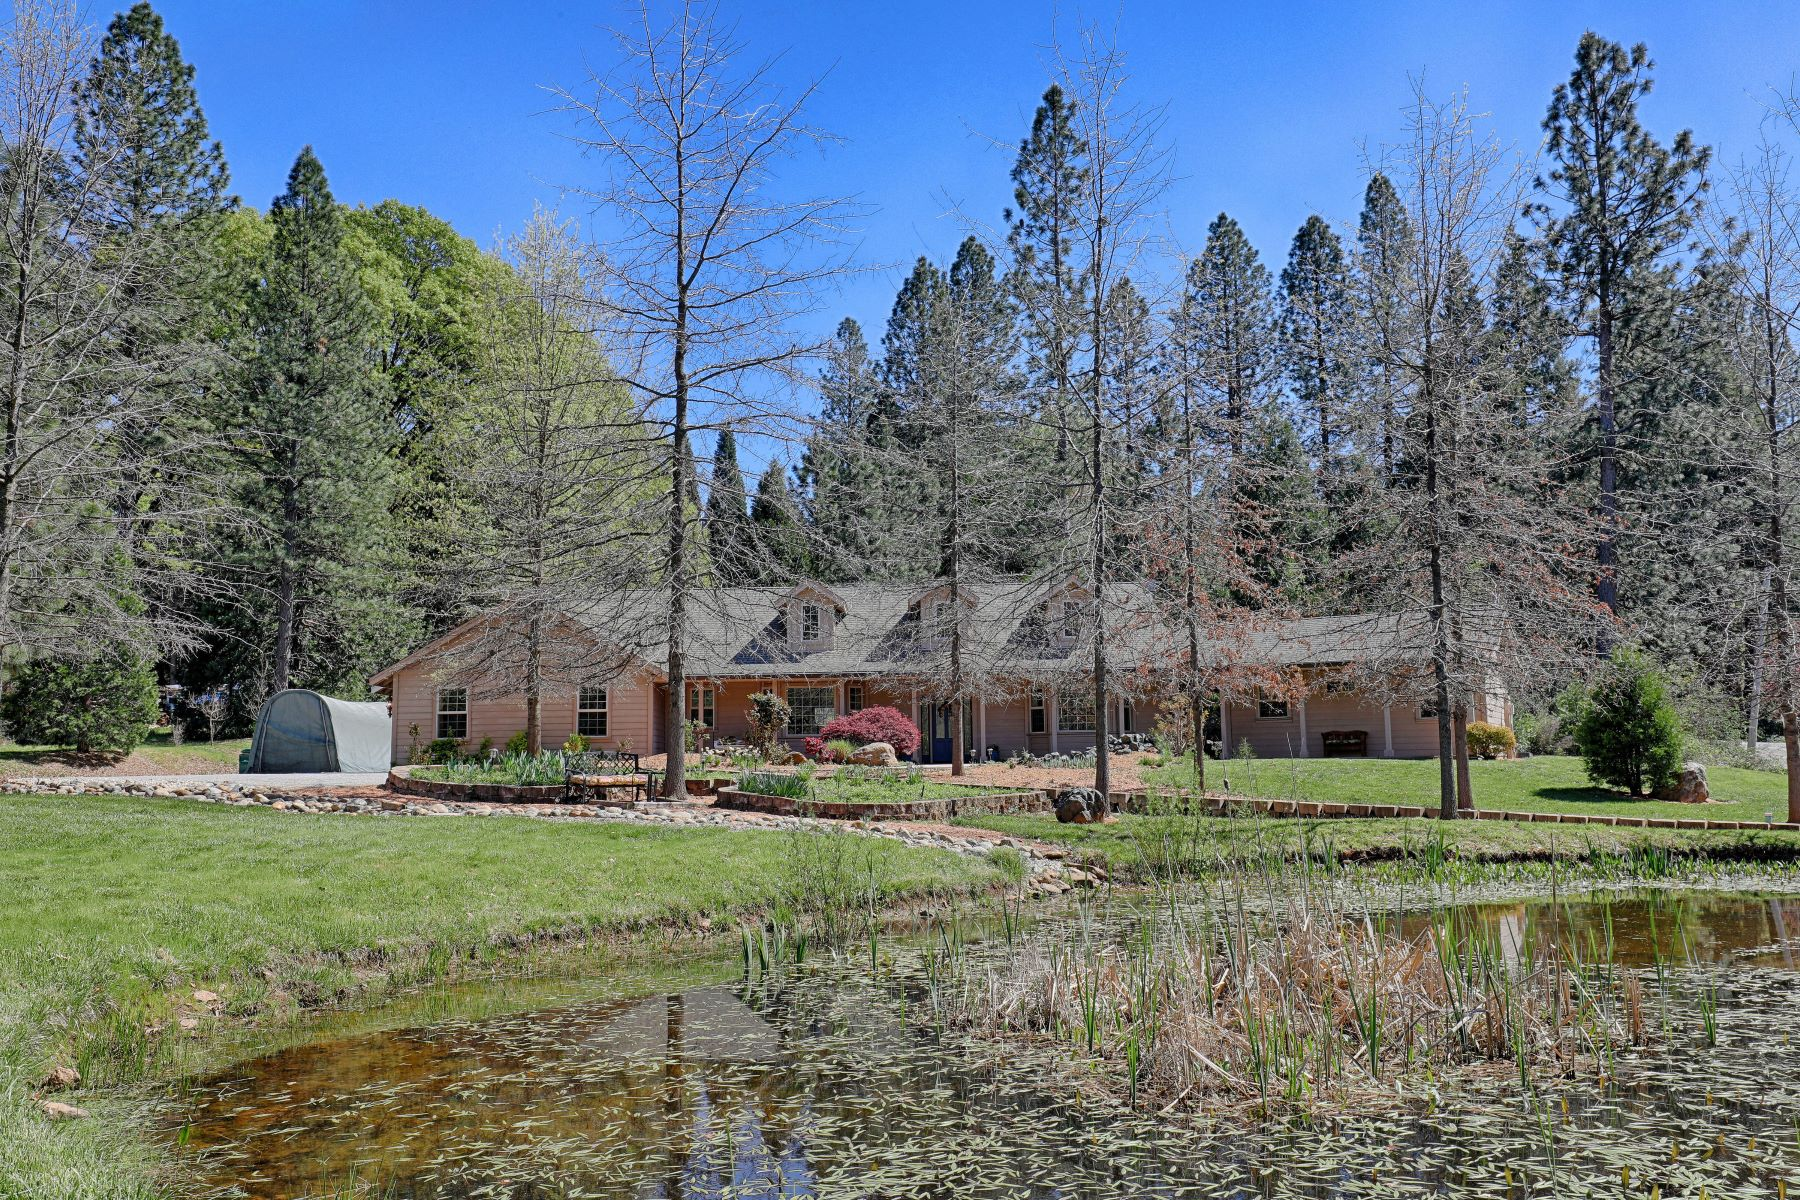 Additional photo for property listing at 13689 Meadow Drive, Grass Valley, CA 13689 Meadow Drive 格拉斯谷, 加利福尼亚州 95945 美国